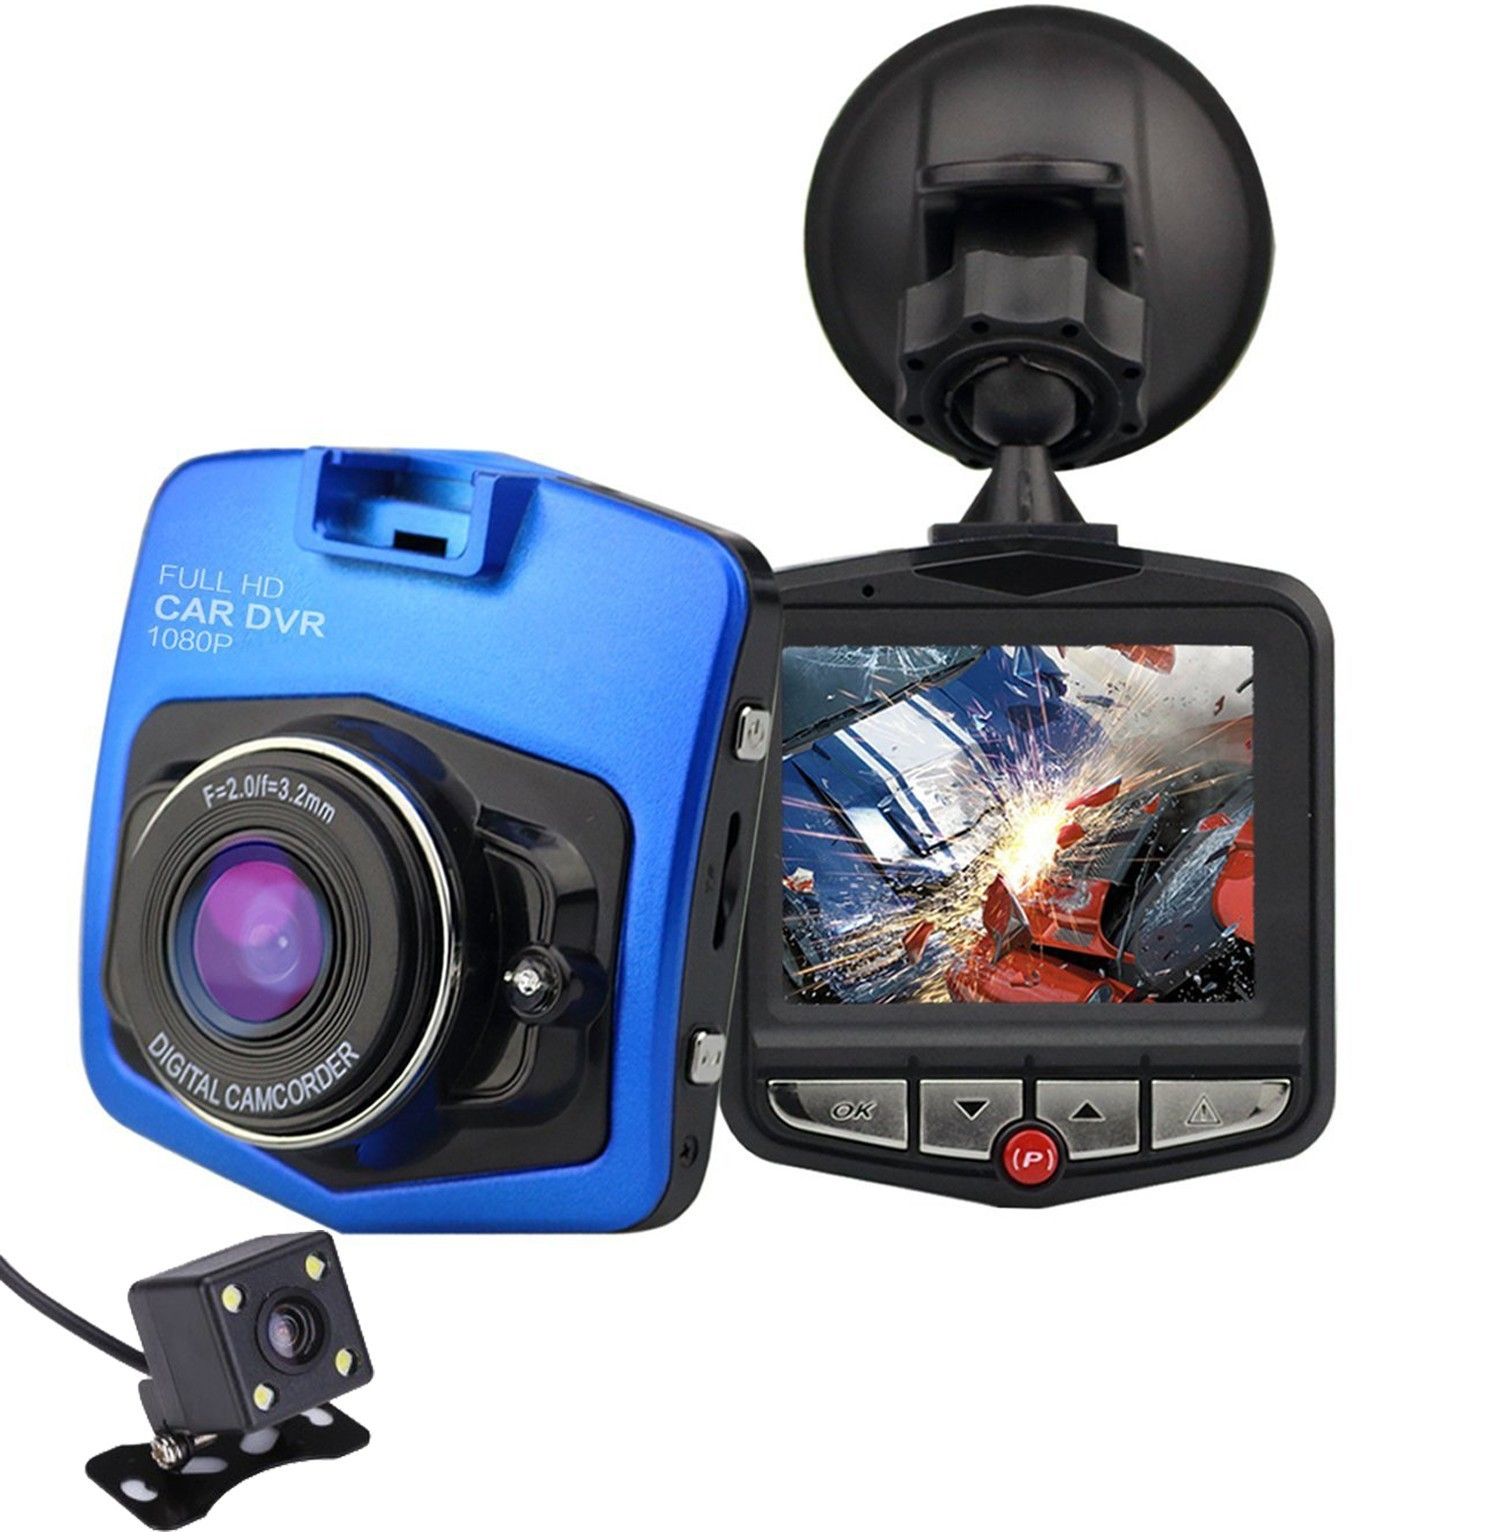 Camera auto Dubla iUni Dash 806, Full HD, 12Mpx, 2.5 Inch, 170 grade, Parking monitor, G senzor, Senzor de miscare, Blue imagine techstar.ro 2021